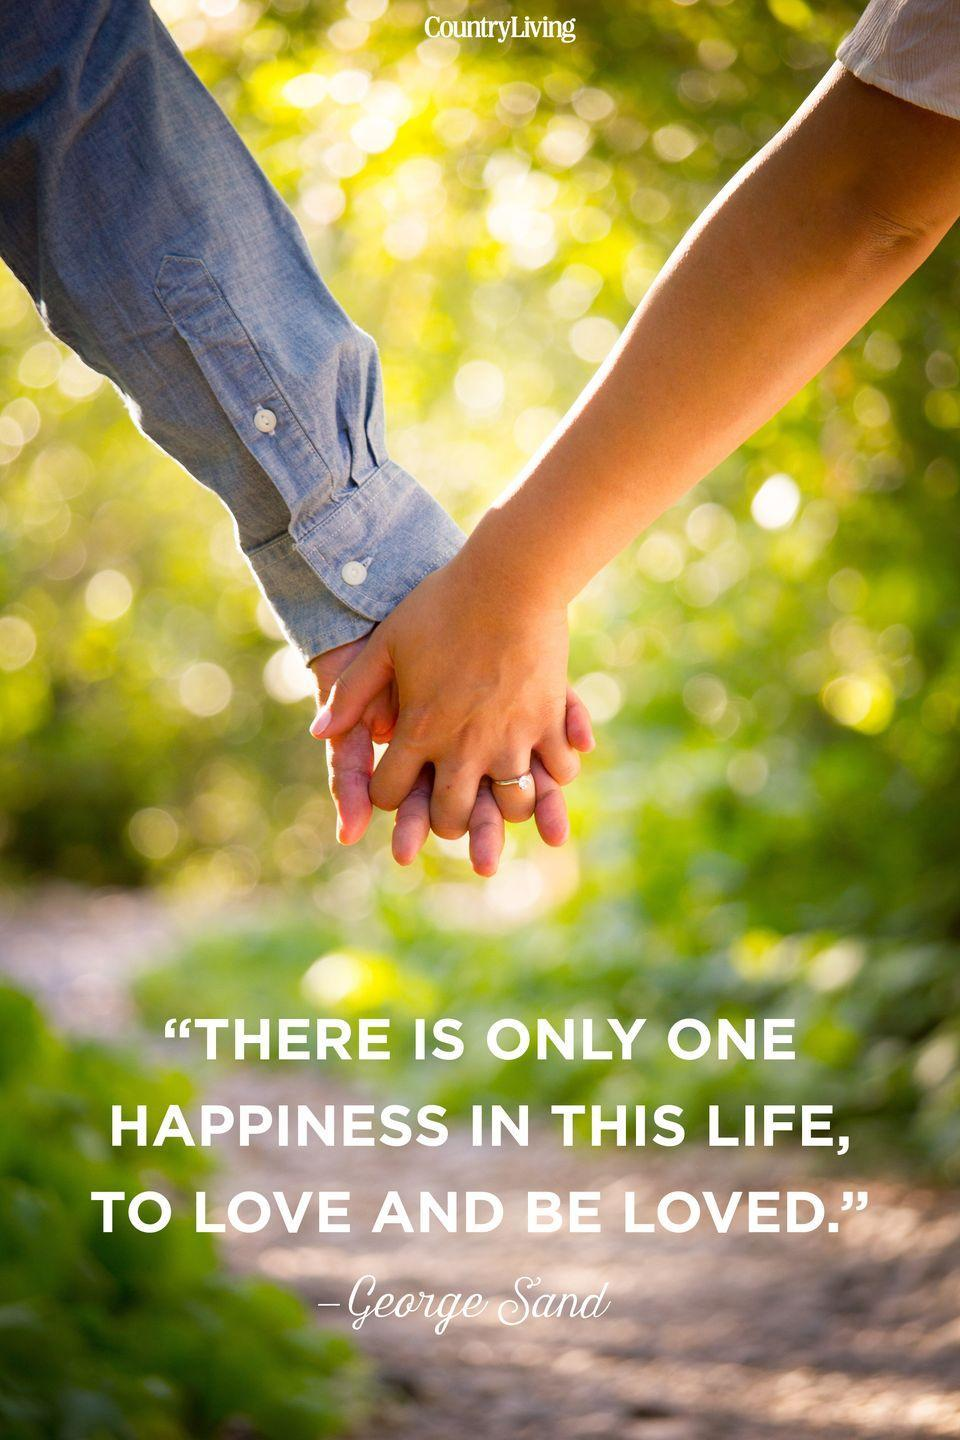 """<p>""""There is only one happiness in this life, to love and be loved.""""</p>"""